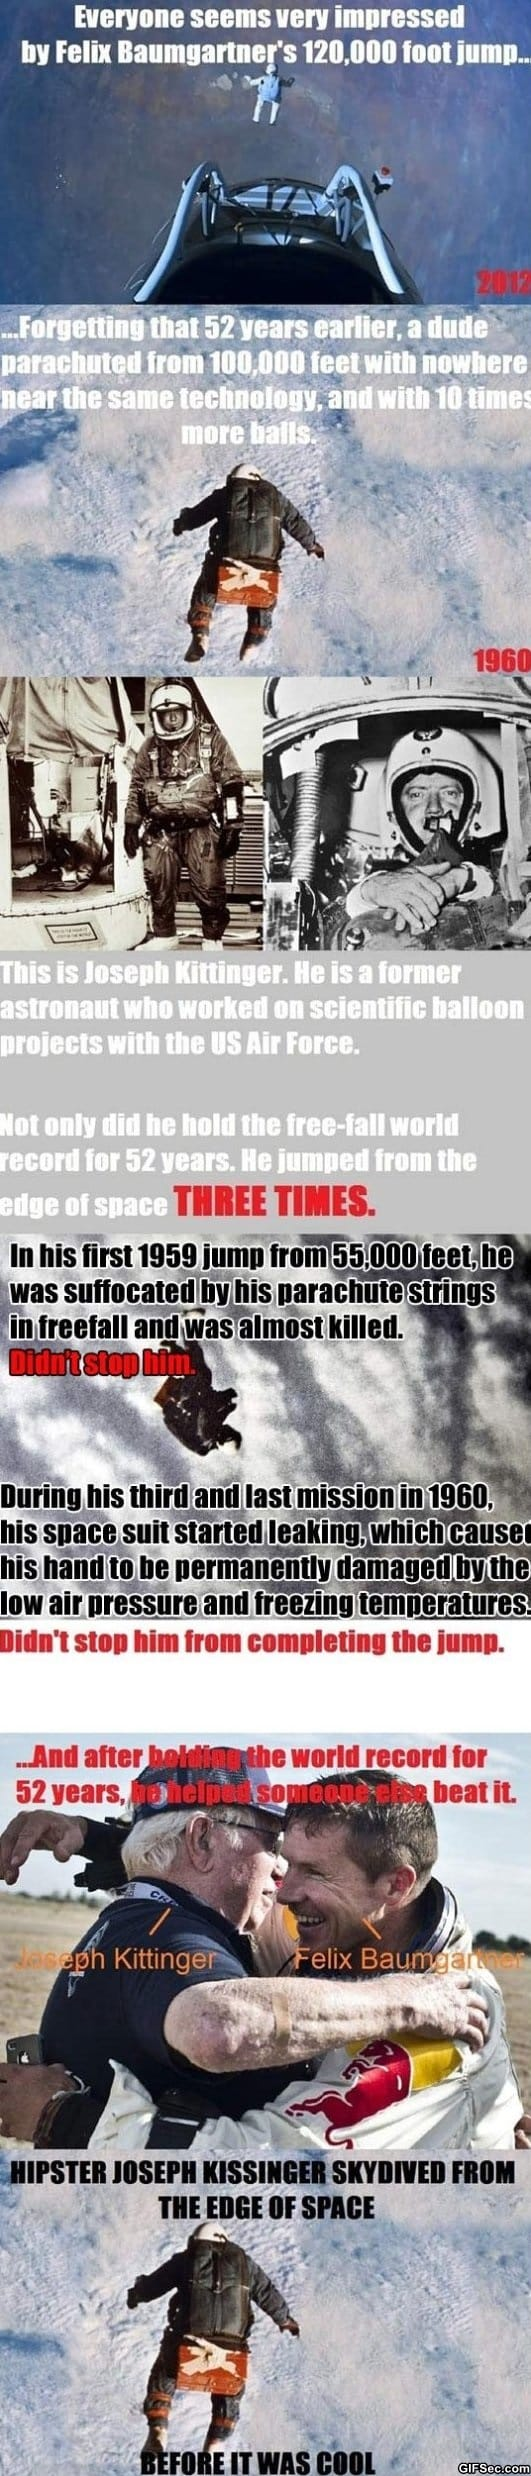 Felix Baumgartner vs. Joseph Kittinger